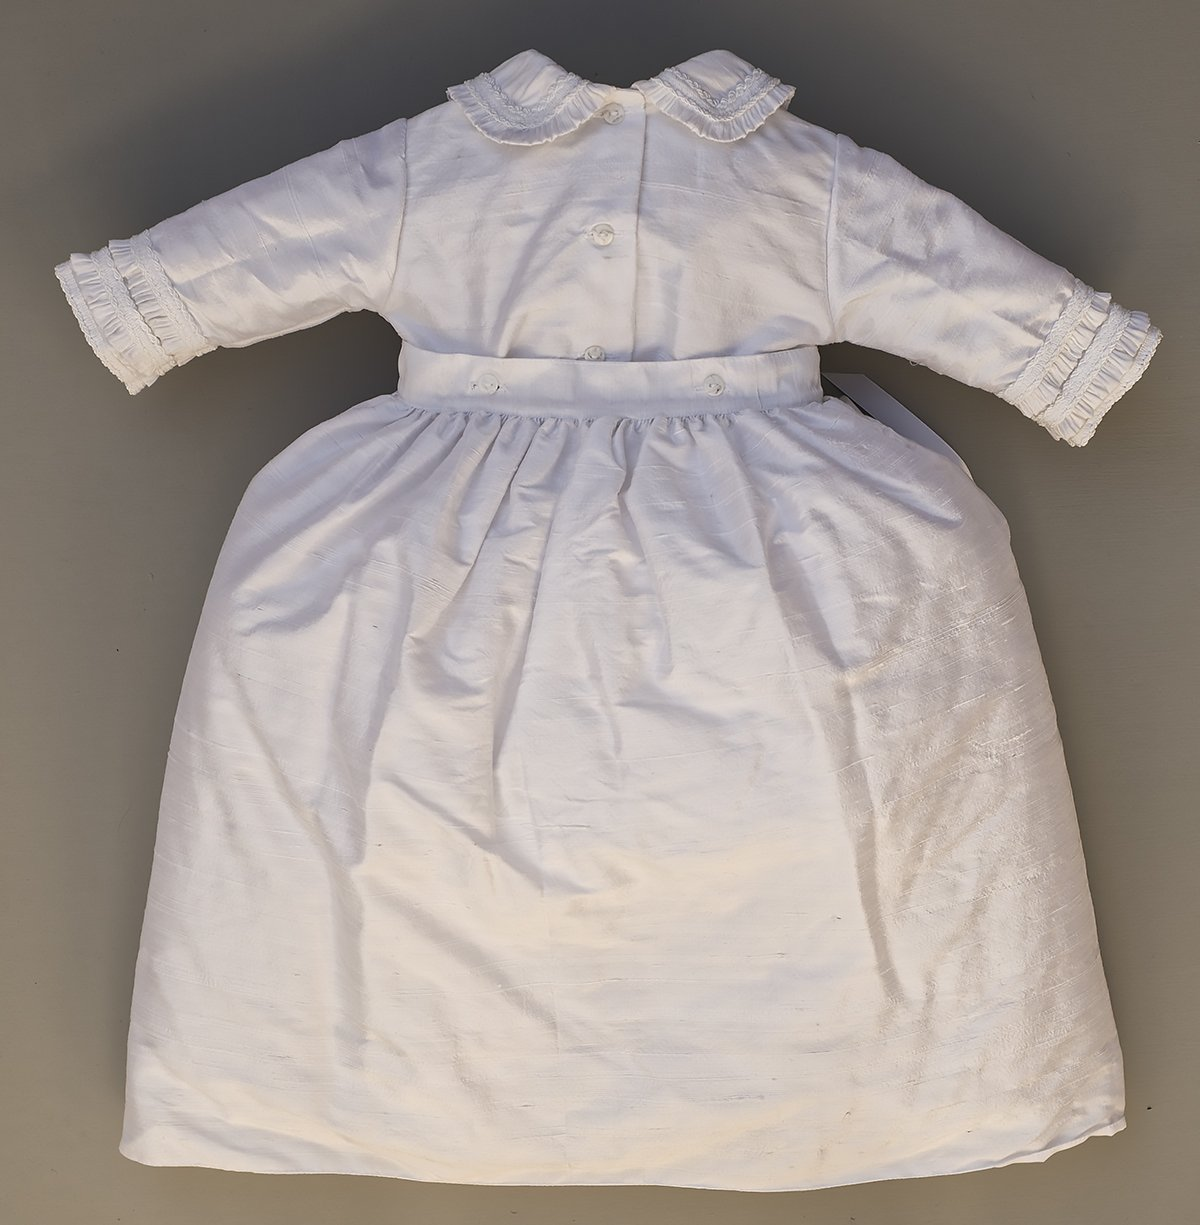 Heirloom Baby Boy's Christening Baptism Gown, Hand Made White Burbvus Ropones by Burbvus (Image #10)